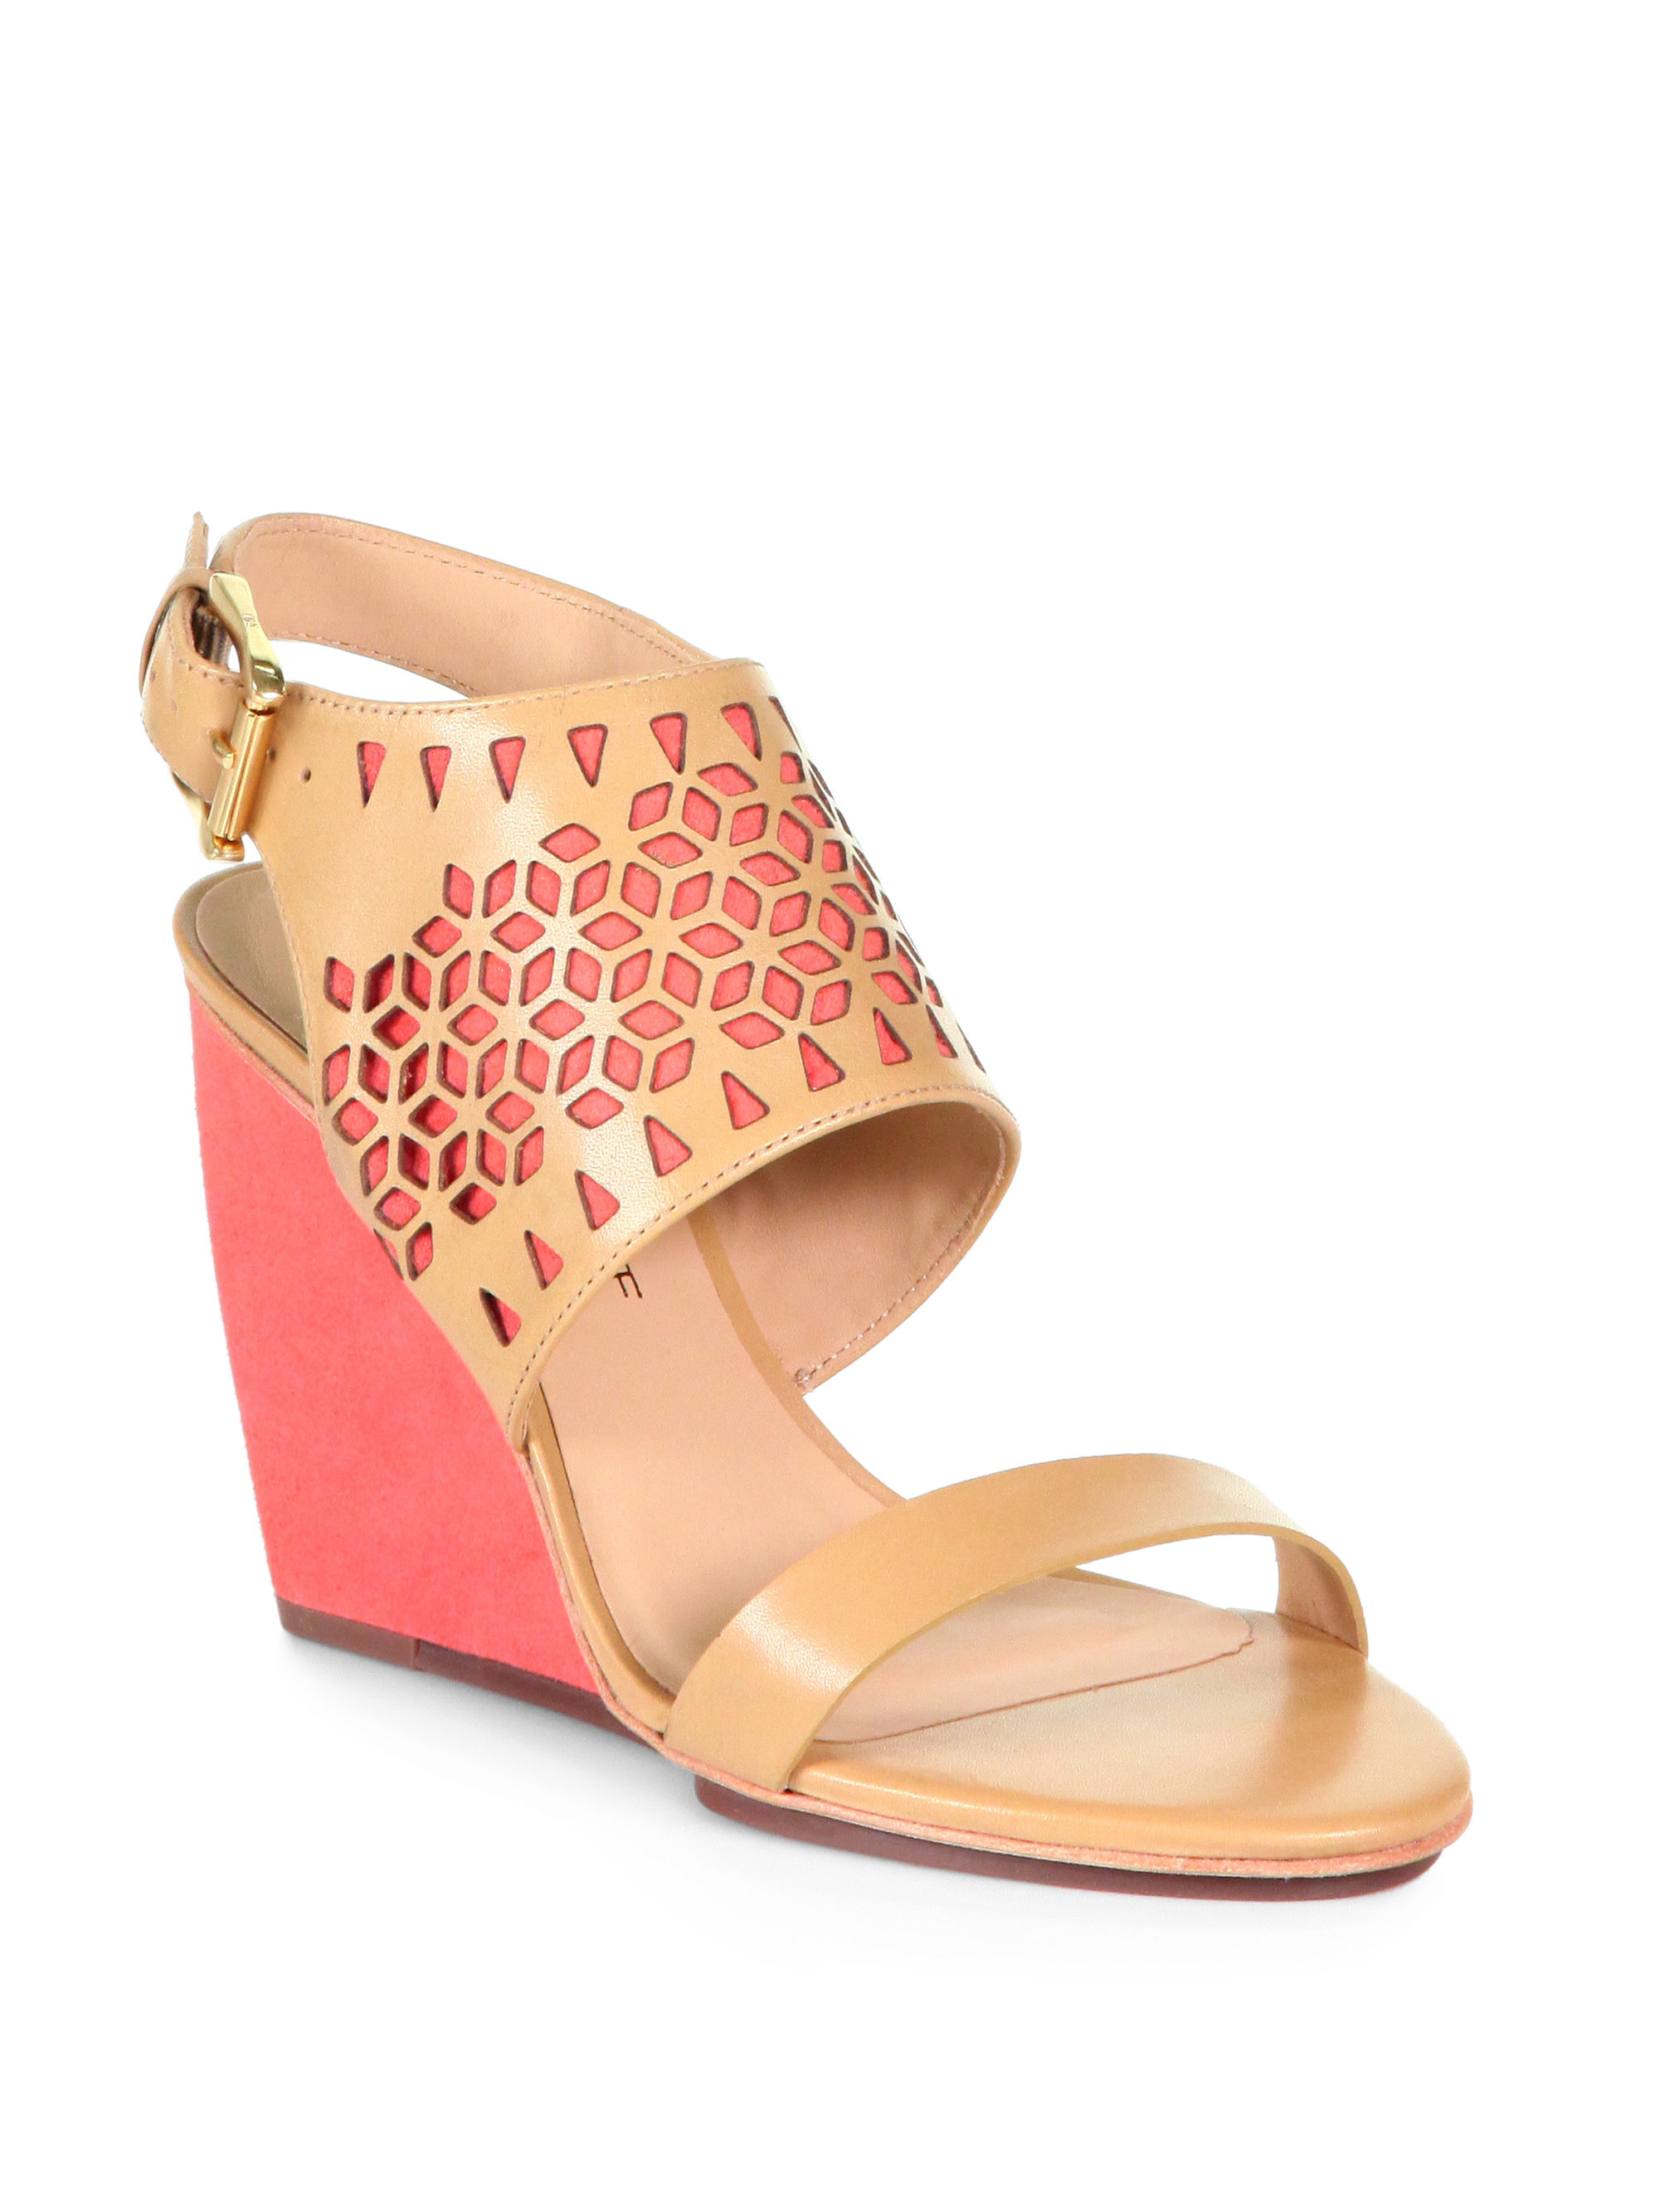 Rebecca Minkoff Leather Laser Cut Wedges free shipping shop cheap wide range of 4O0Xg4